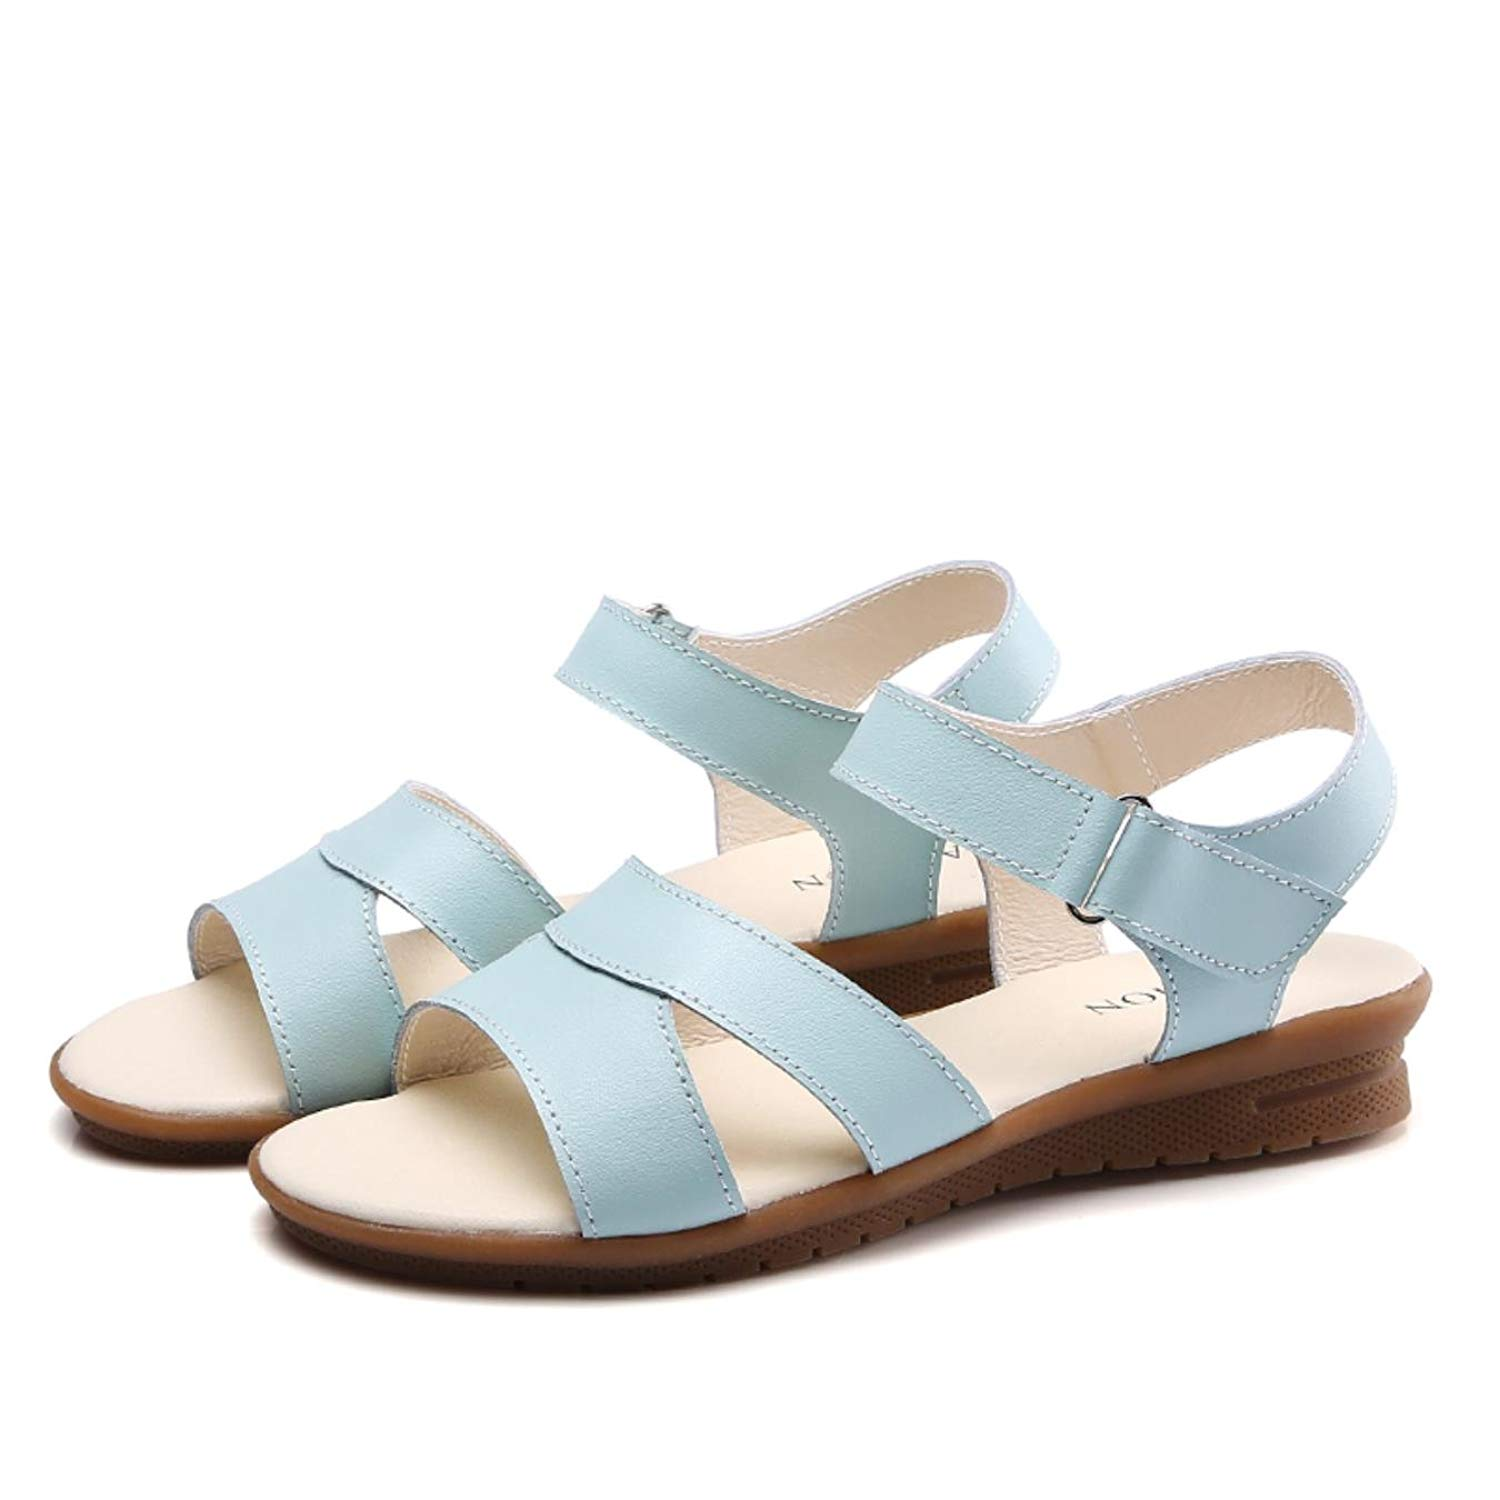 9ea0b07be Get Quotations · Women Sandals Summer Cow Leather Flat Sandals Ankle Strap Flat  Sandals